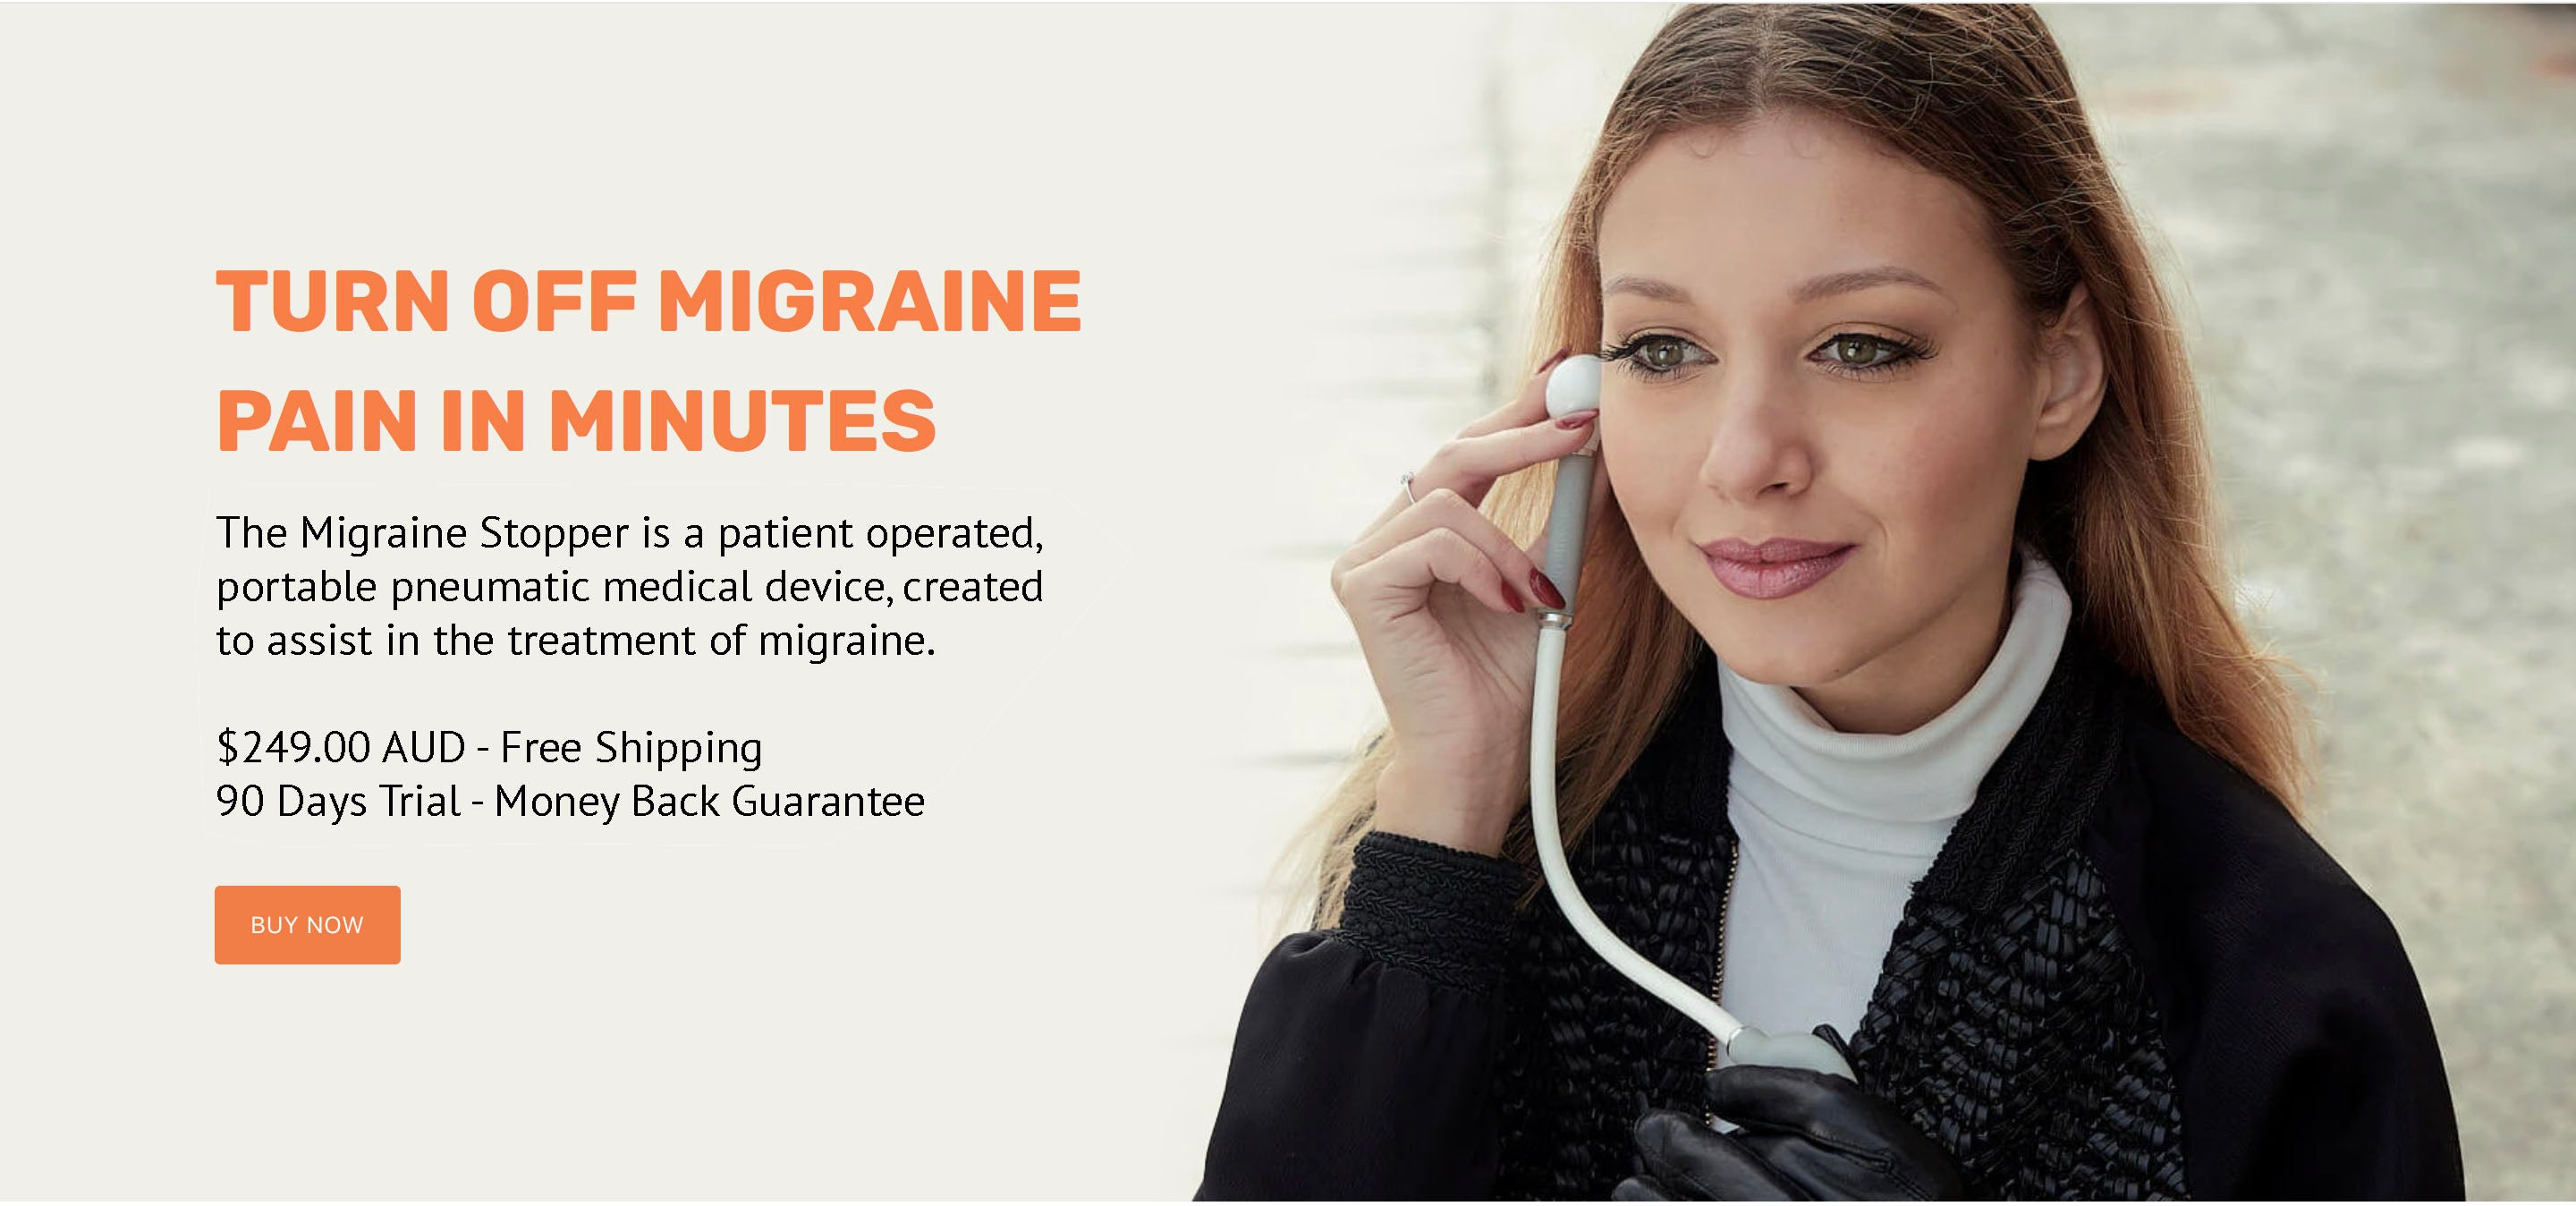 Turn off migraine pain in minutes